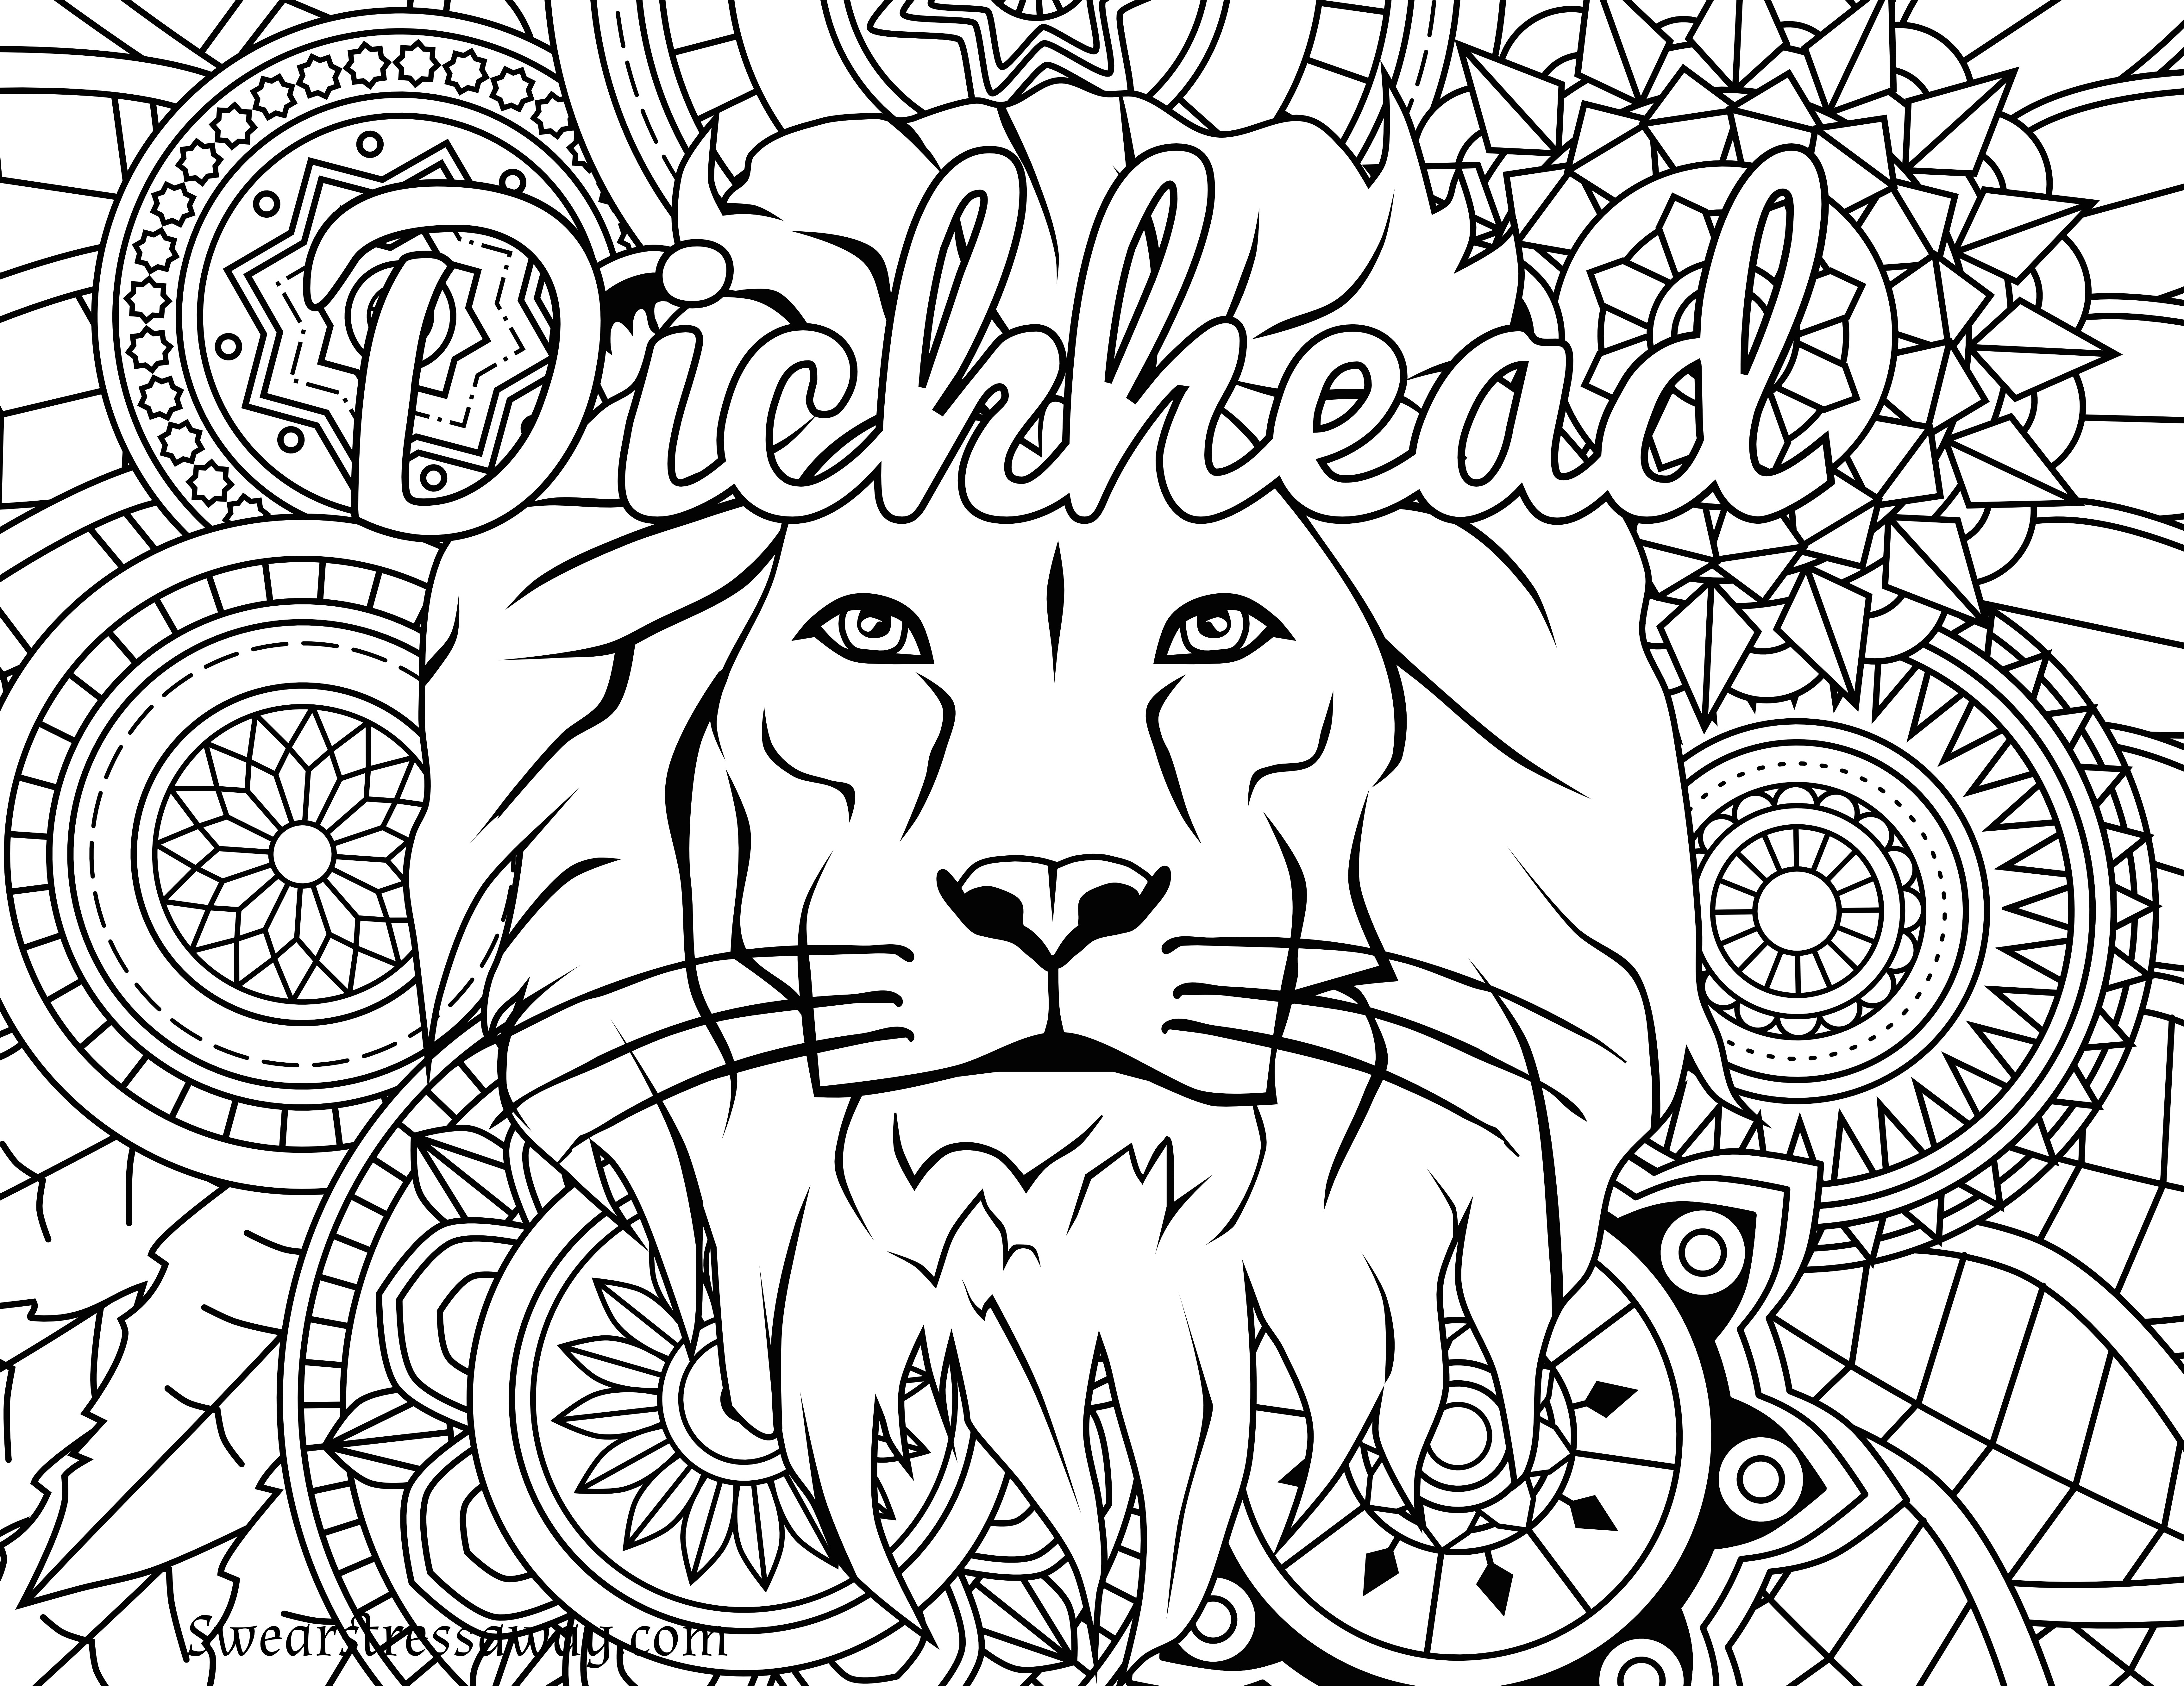 Swear Words Coloring Pages - Lezincnyc - Swear Word Coloring Pages Printable Free